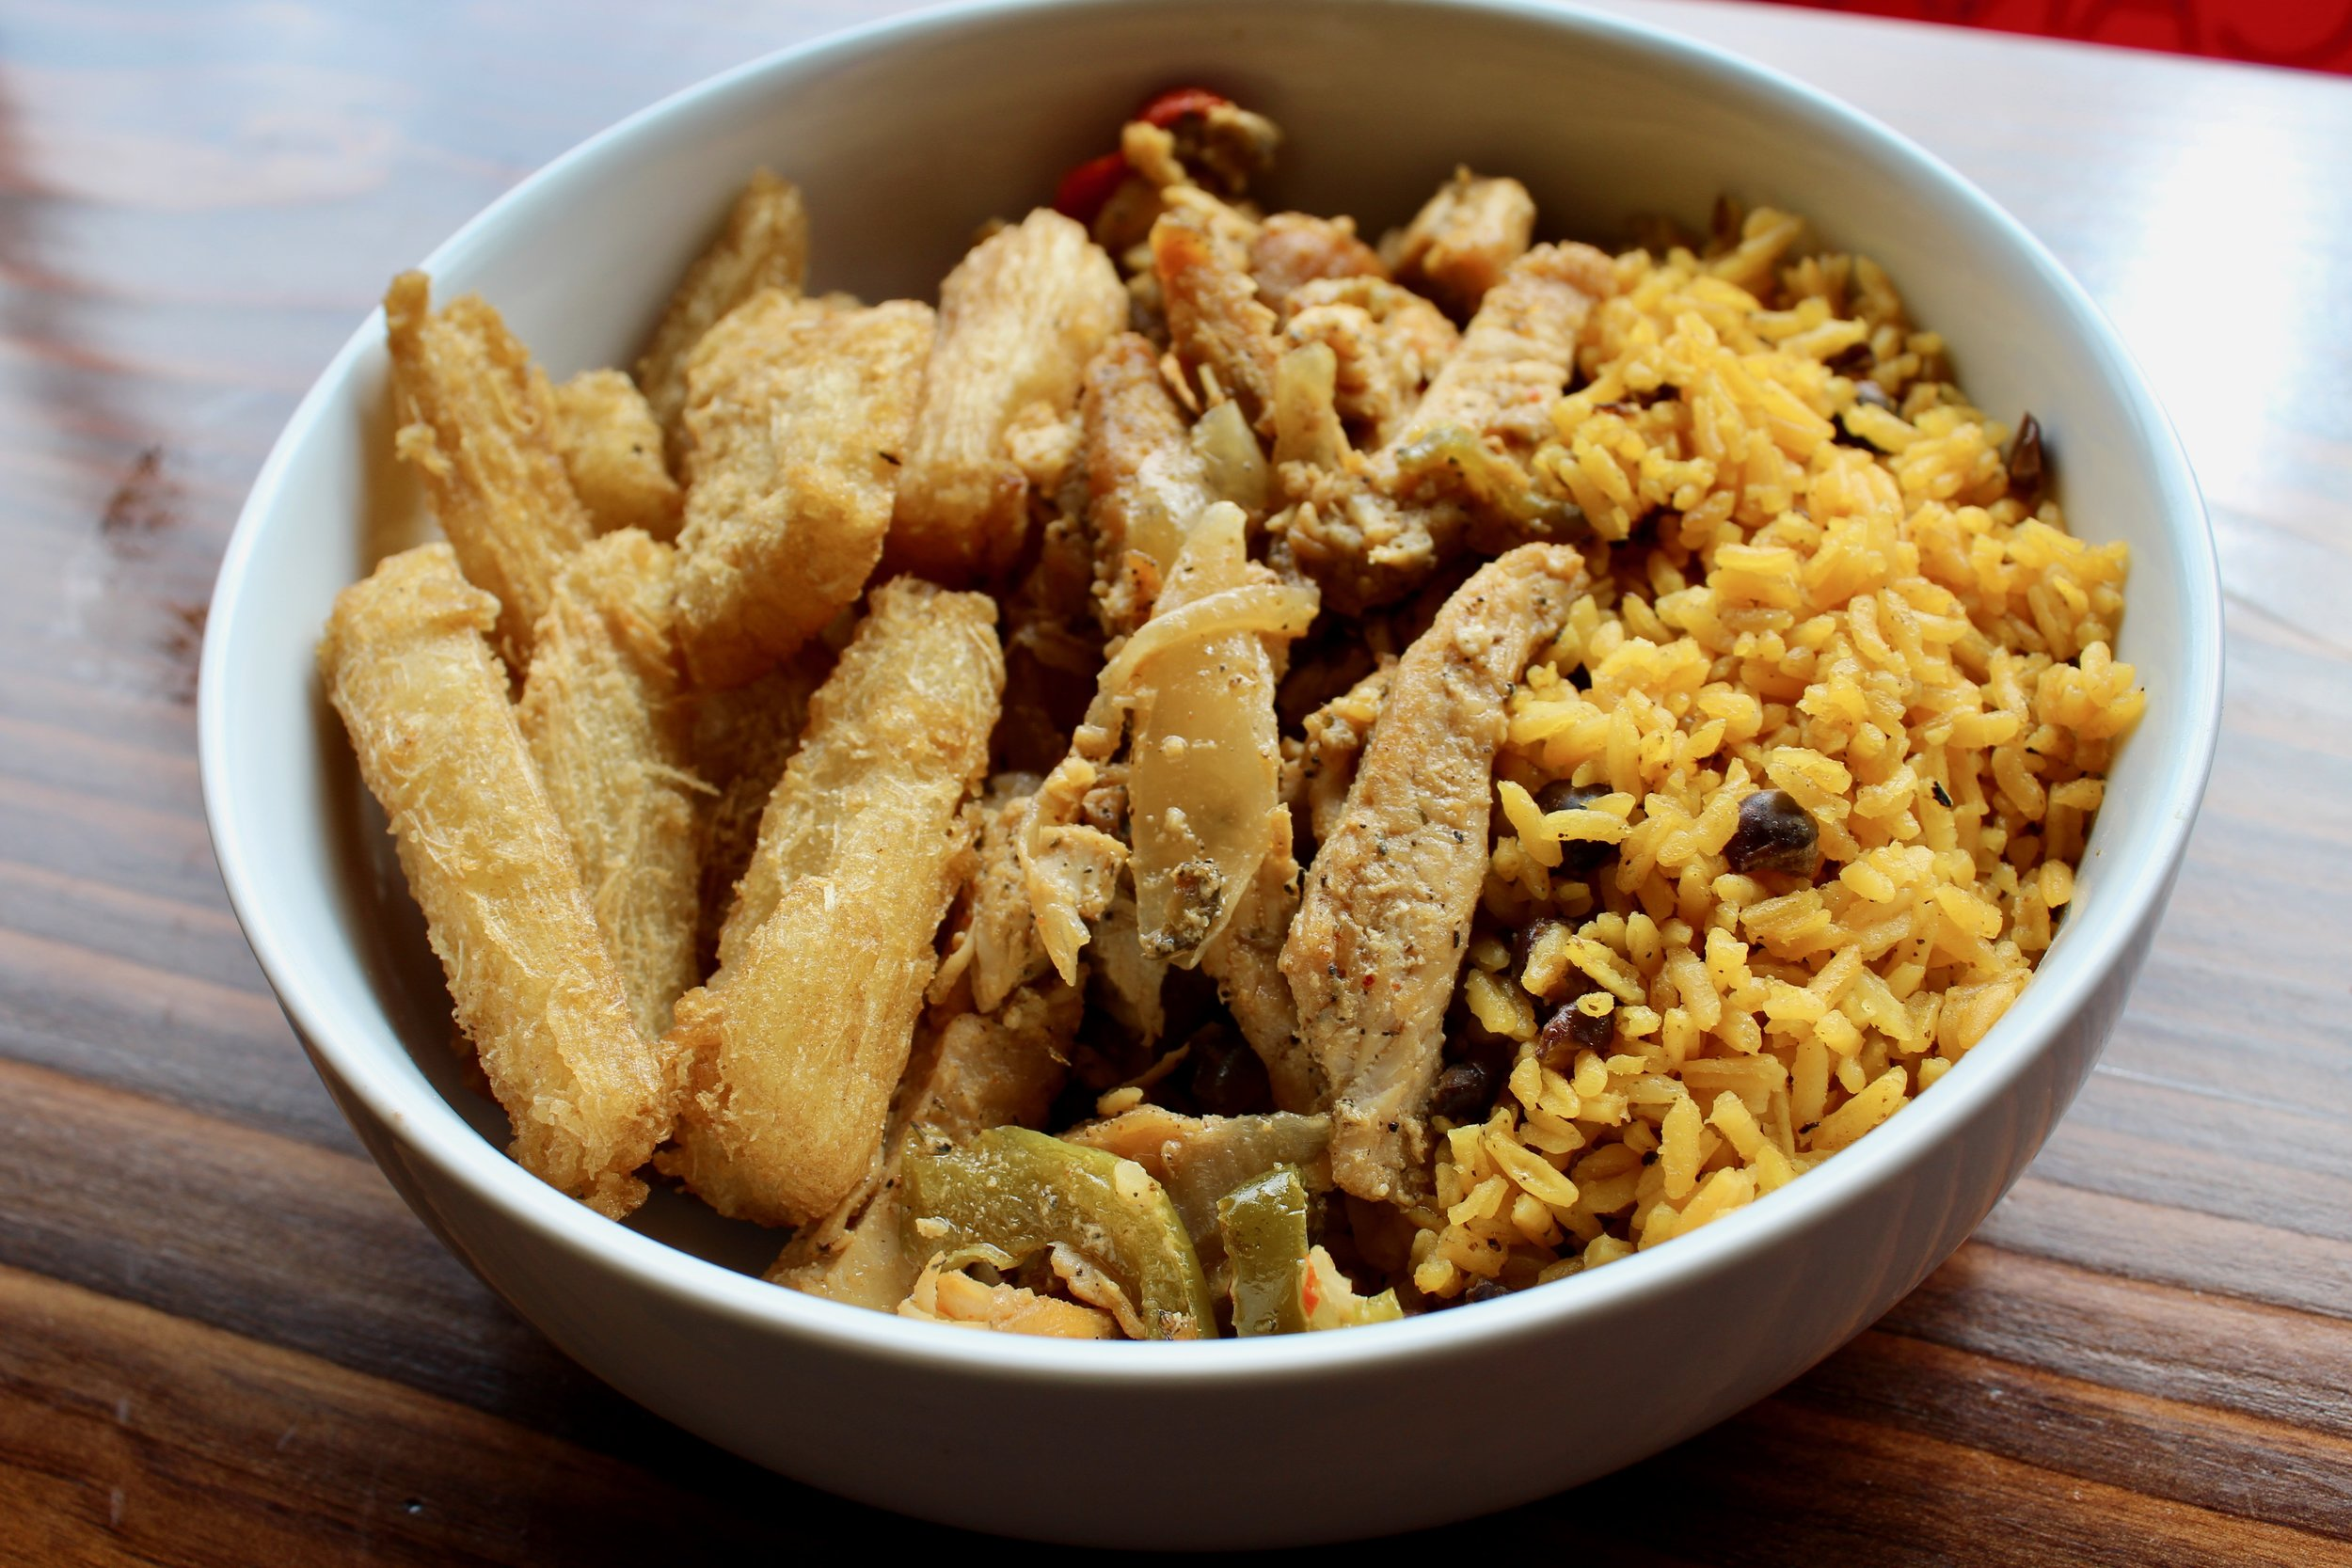 Cana bowl with grilled chicken, yellow rice and peas, and fried yucca.